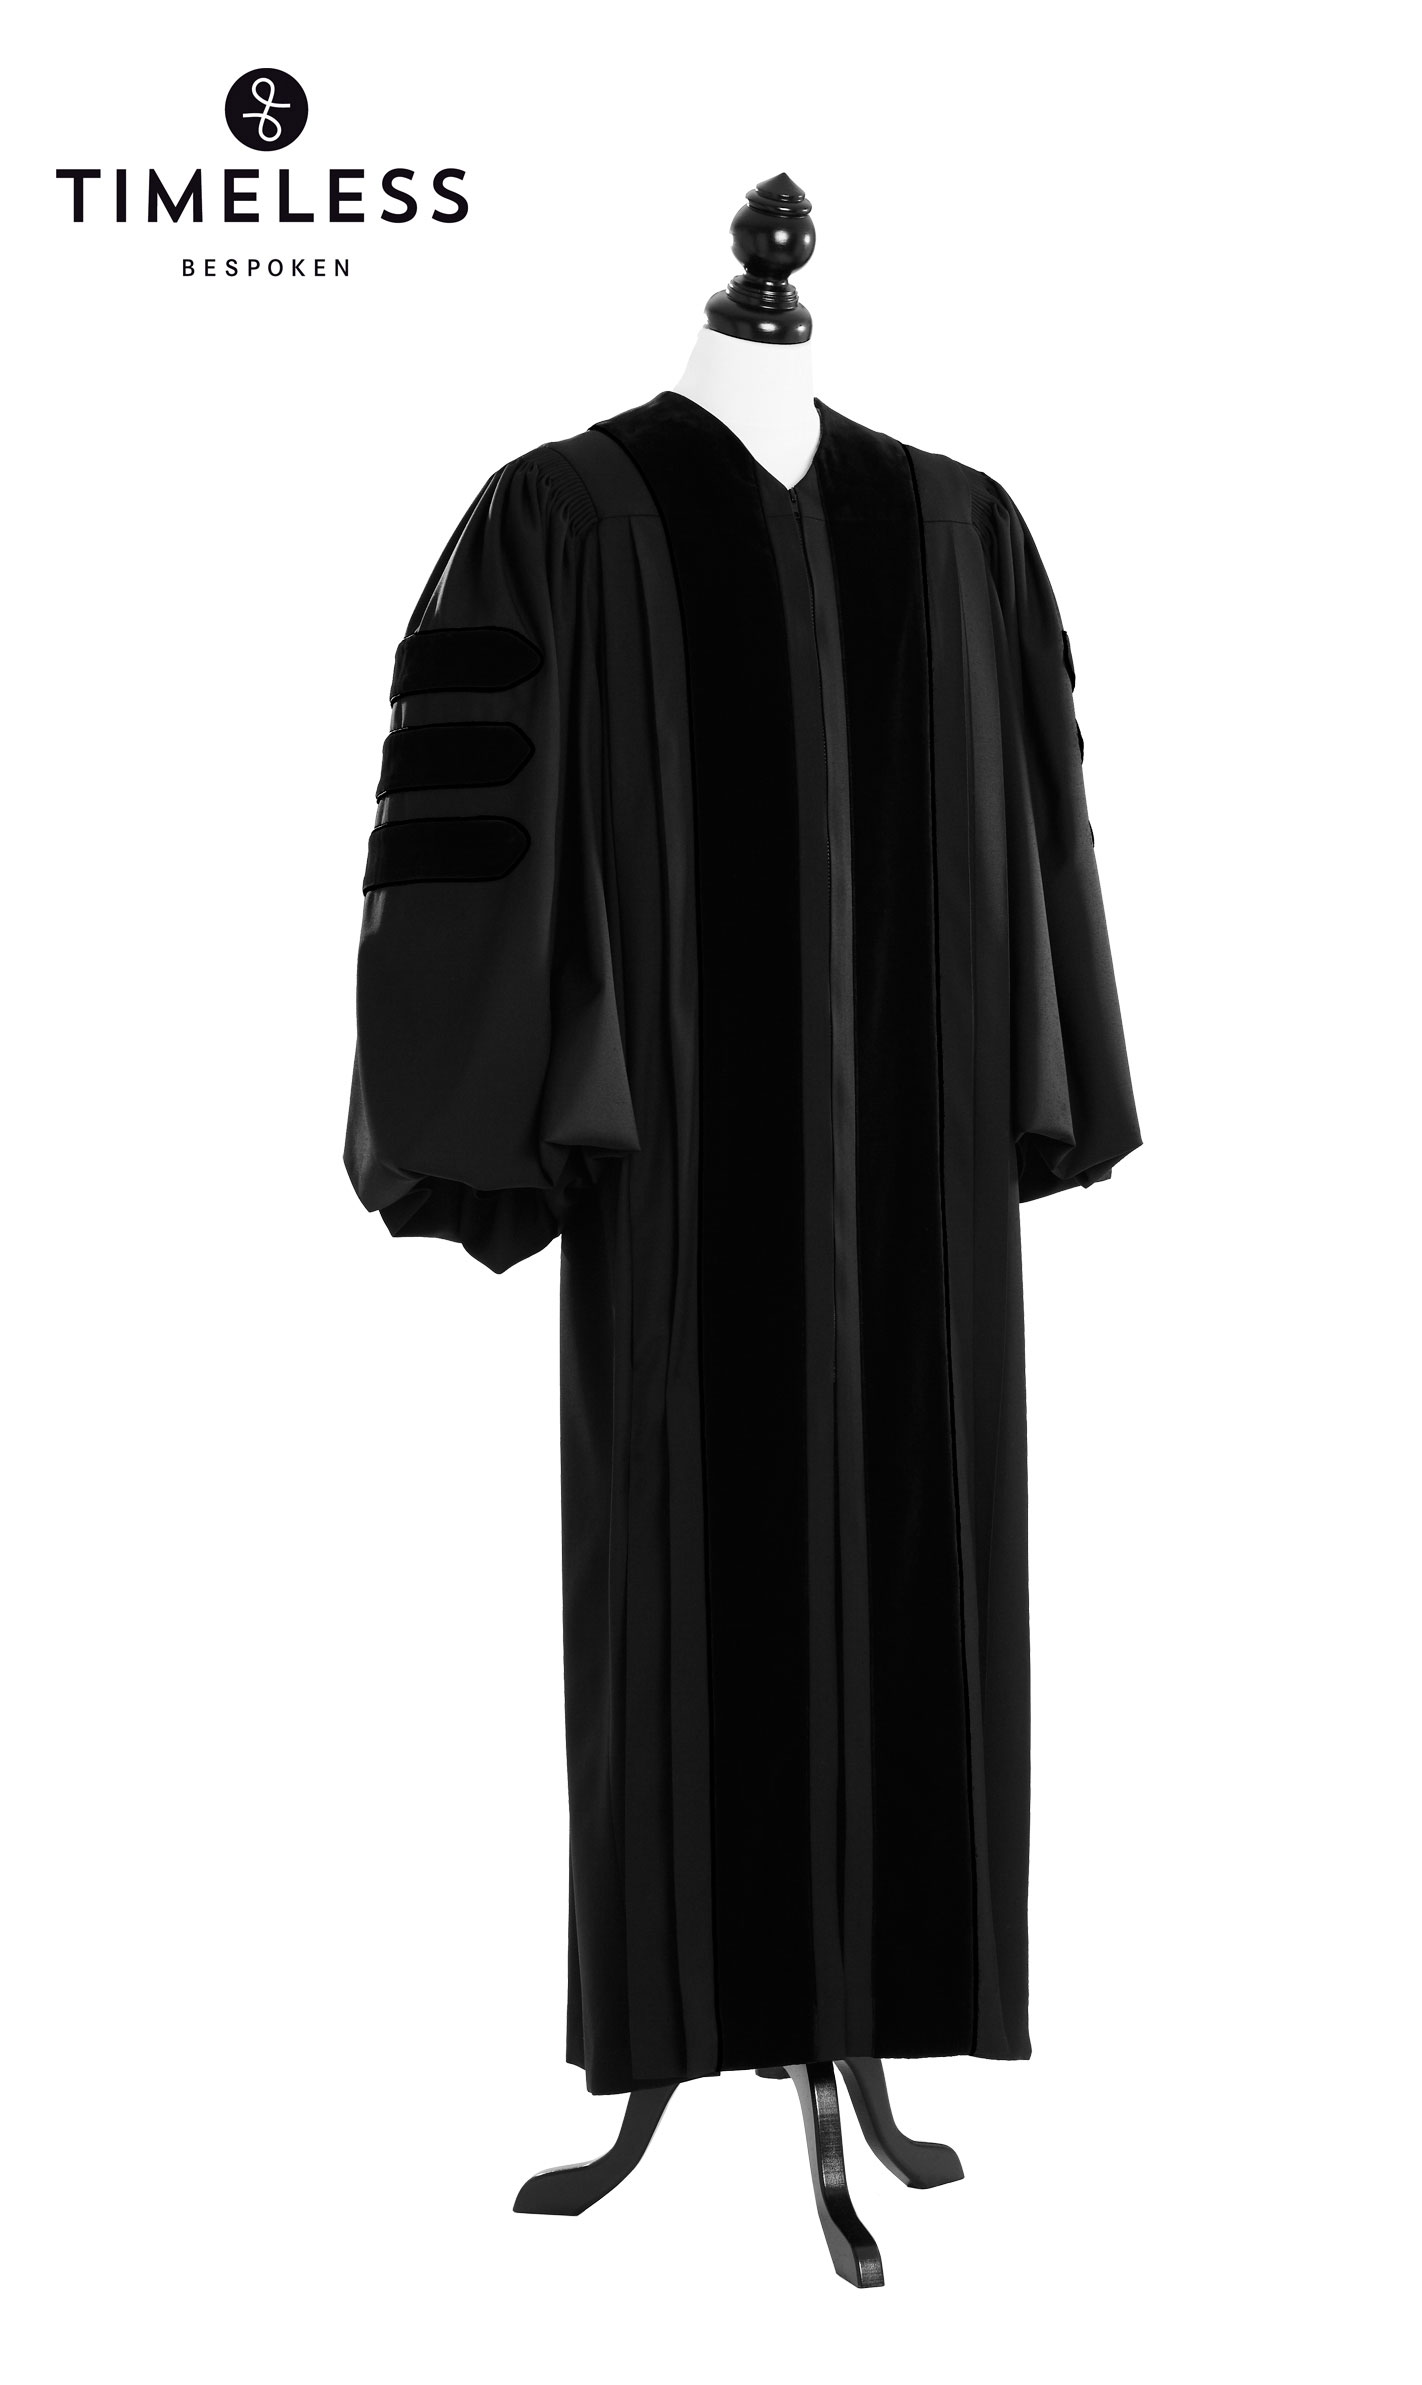 Deluxe Black Clergy Talar, TIMELESS silver wool